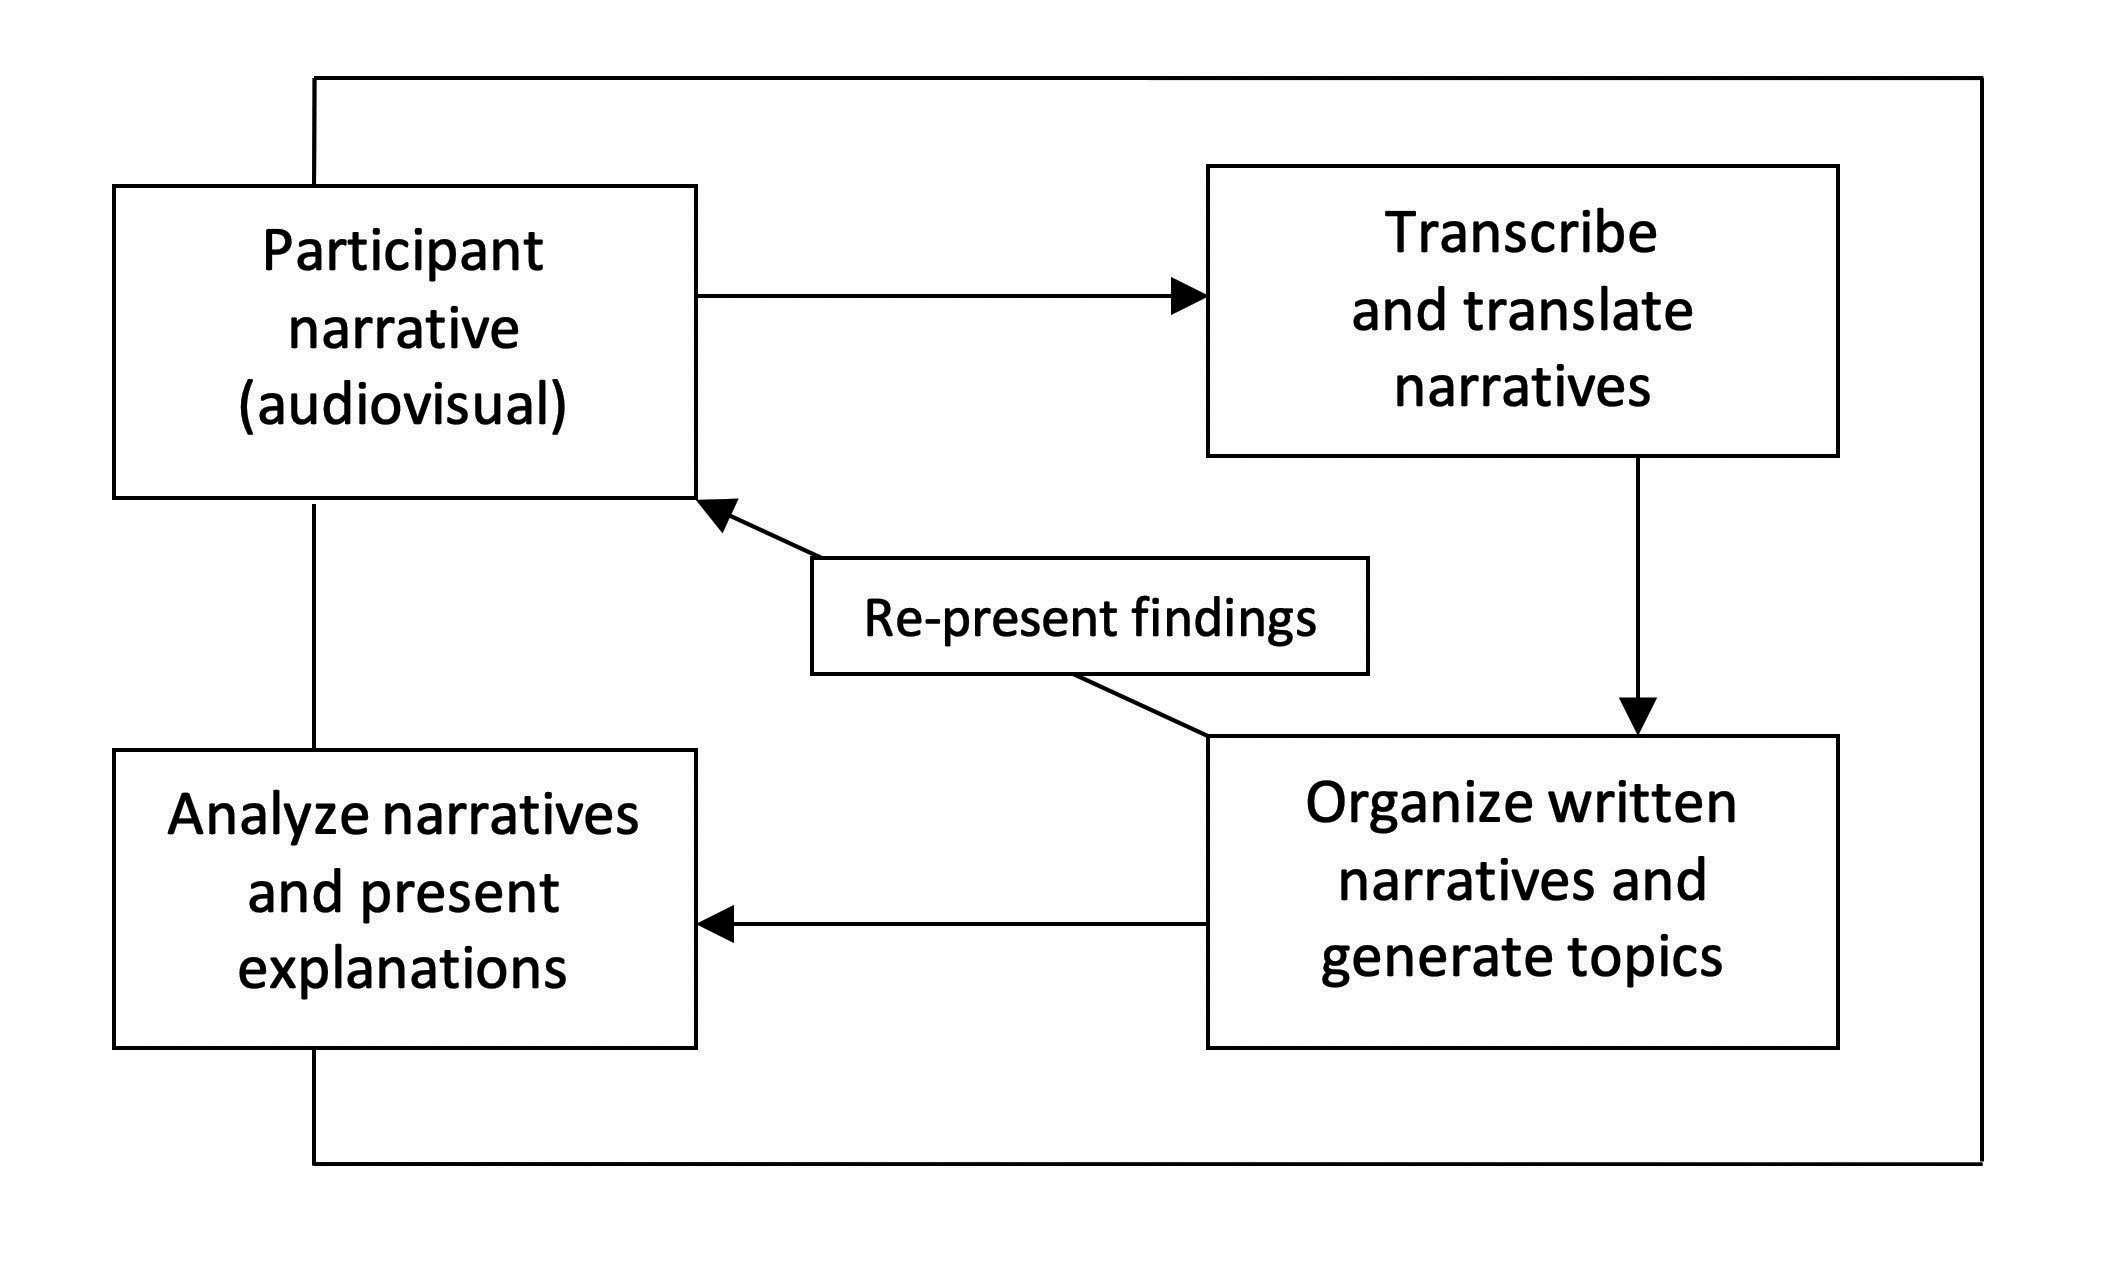 Ethnohistorical Narrative Research Flow Chart | Bunun Hunter Research | Dr Steven A Martin | SAGE Ethnography | Laipunuk Taiwan 內本鹿